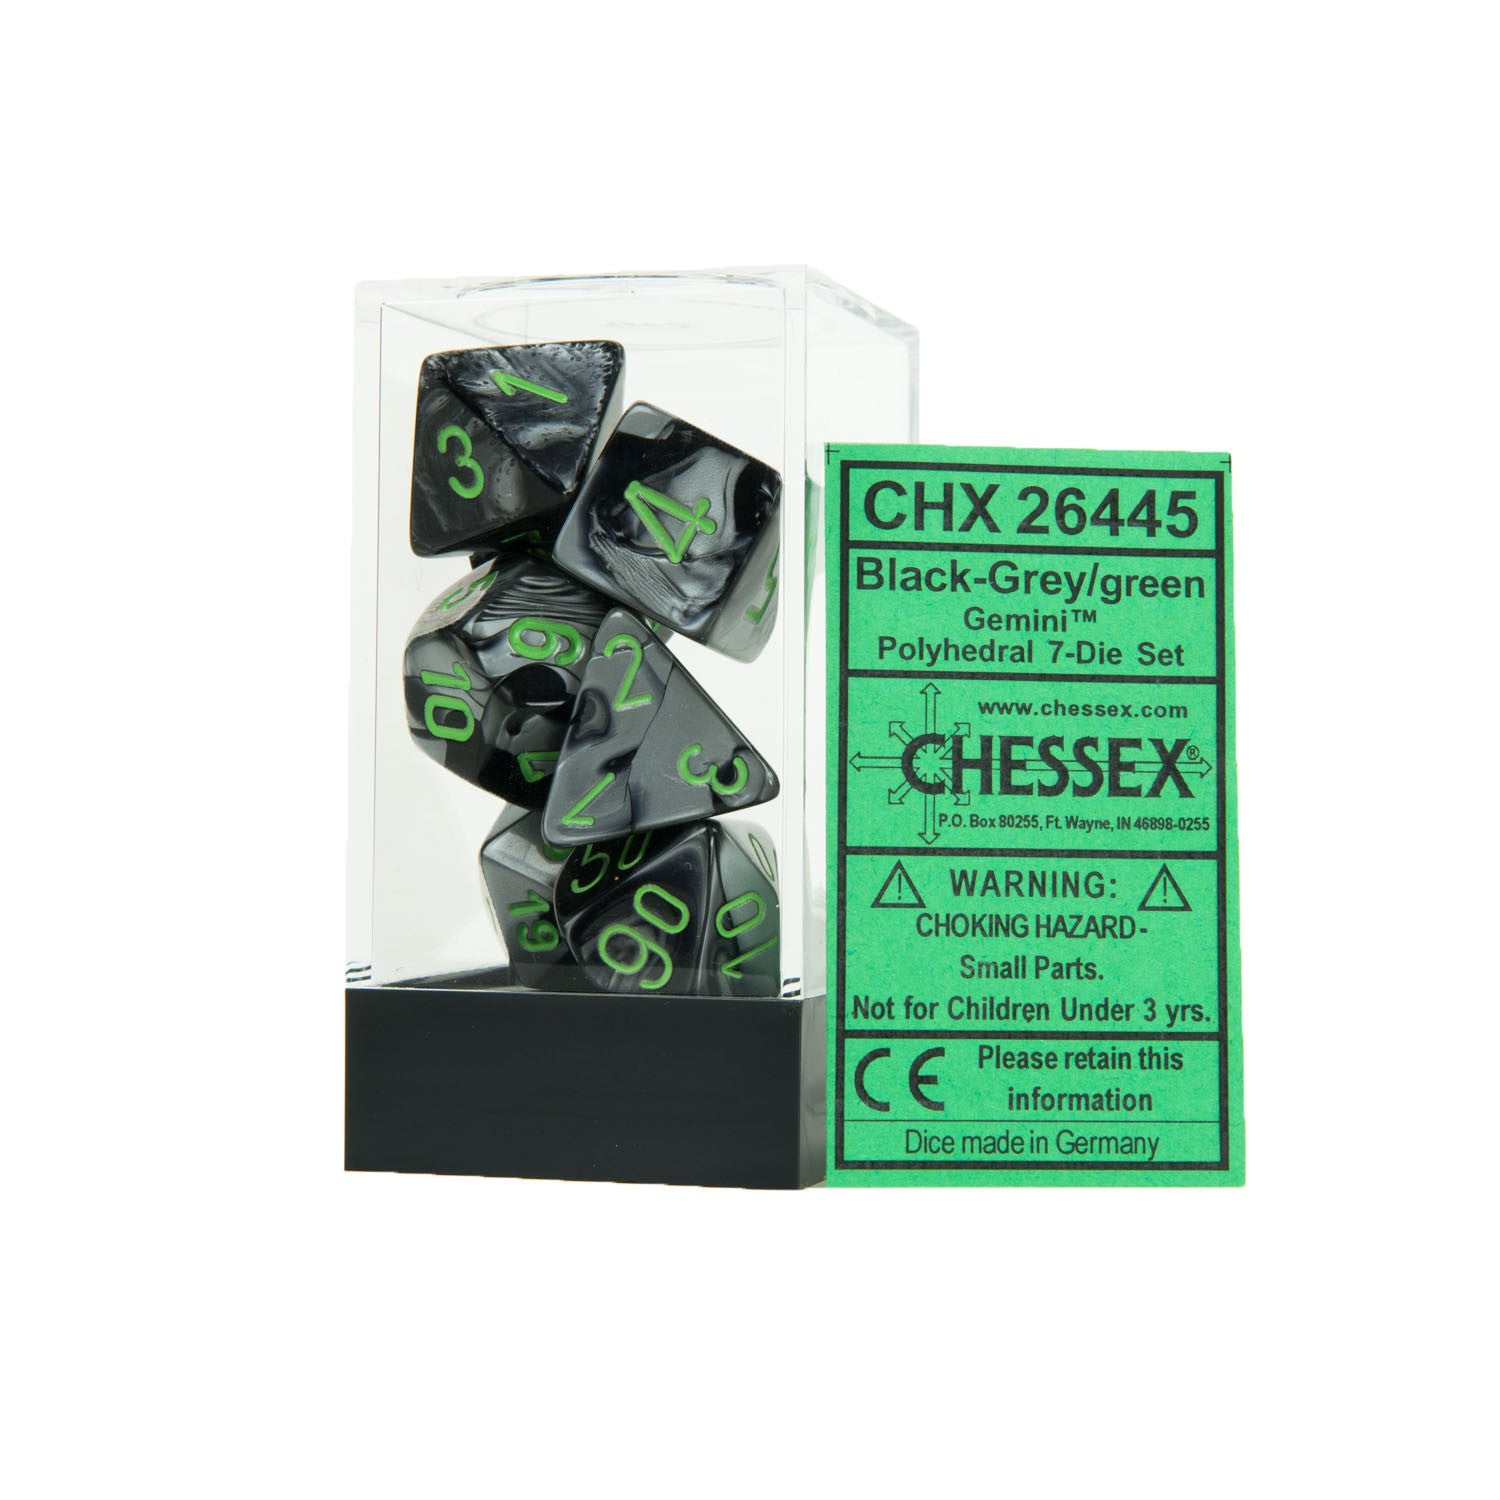 Chessex CHX26445 Black-Grey w/green Gemini™ Polyhedral Dice Set